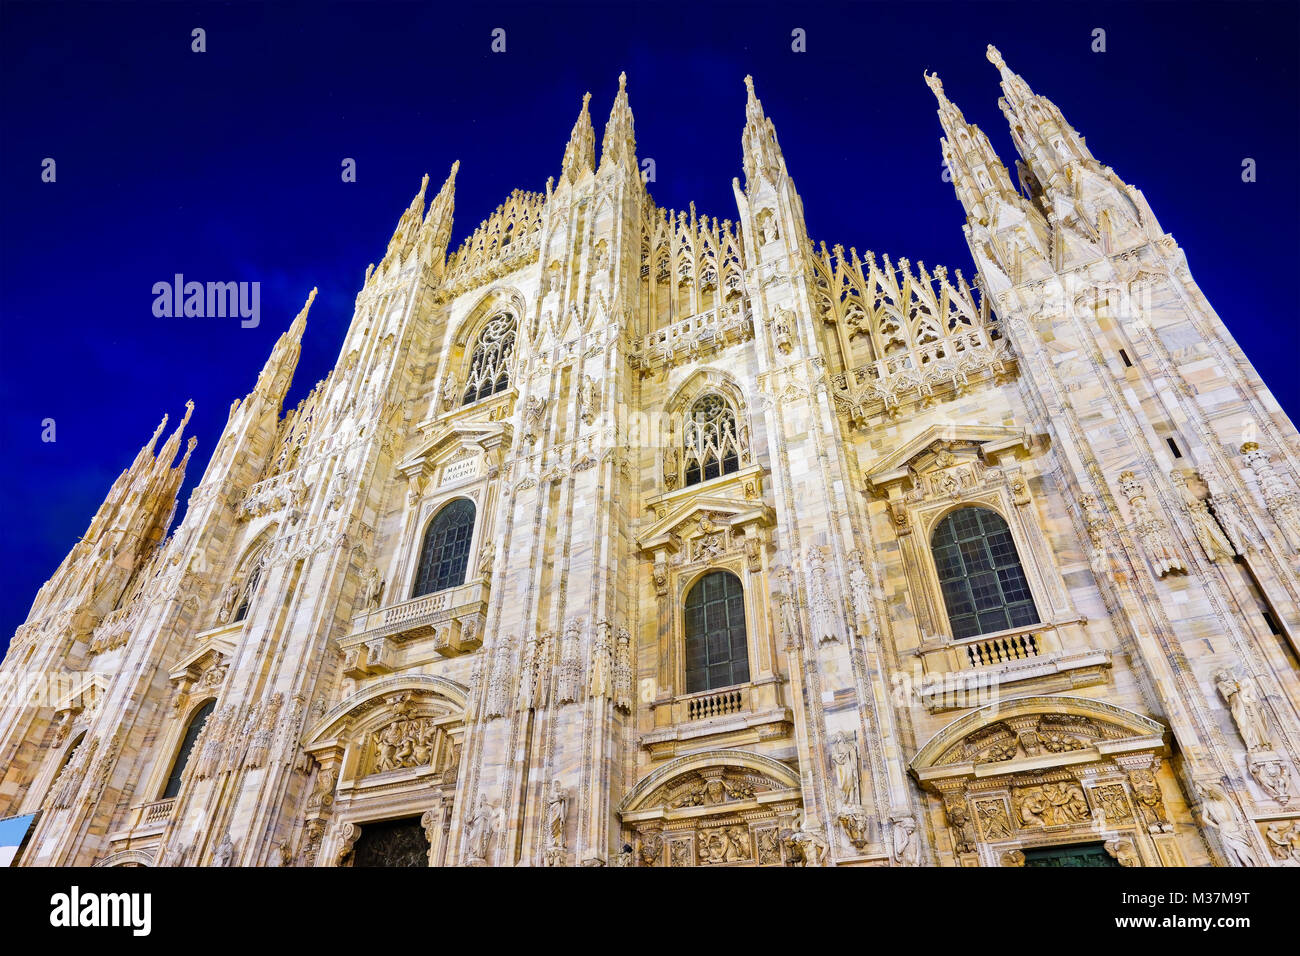 View of the Milan Cathedral at night in Milan, Italy. - Stock Image